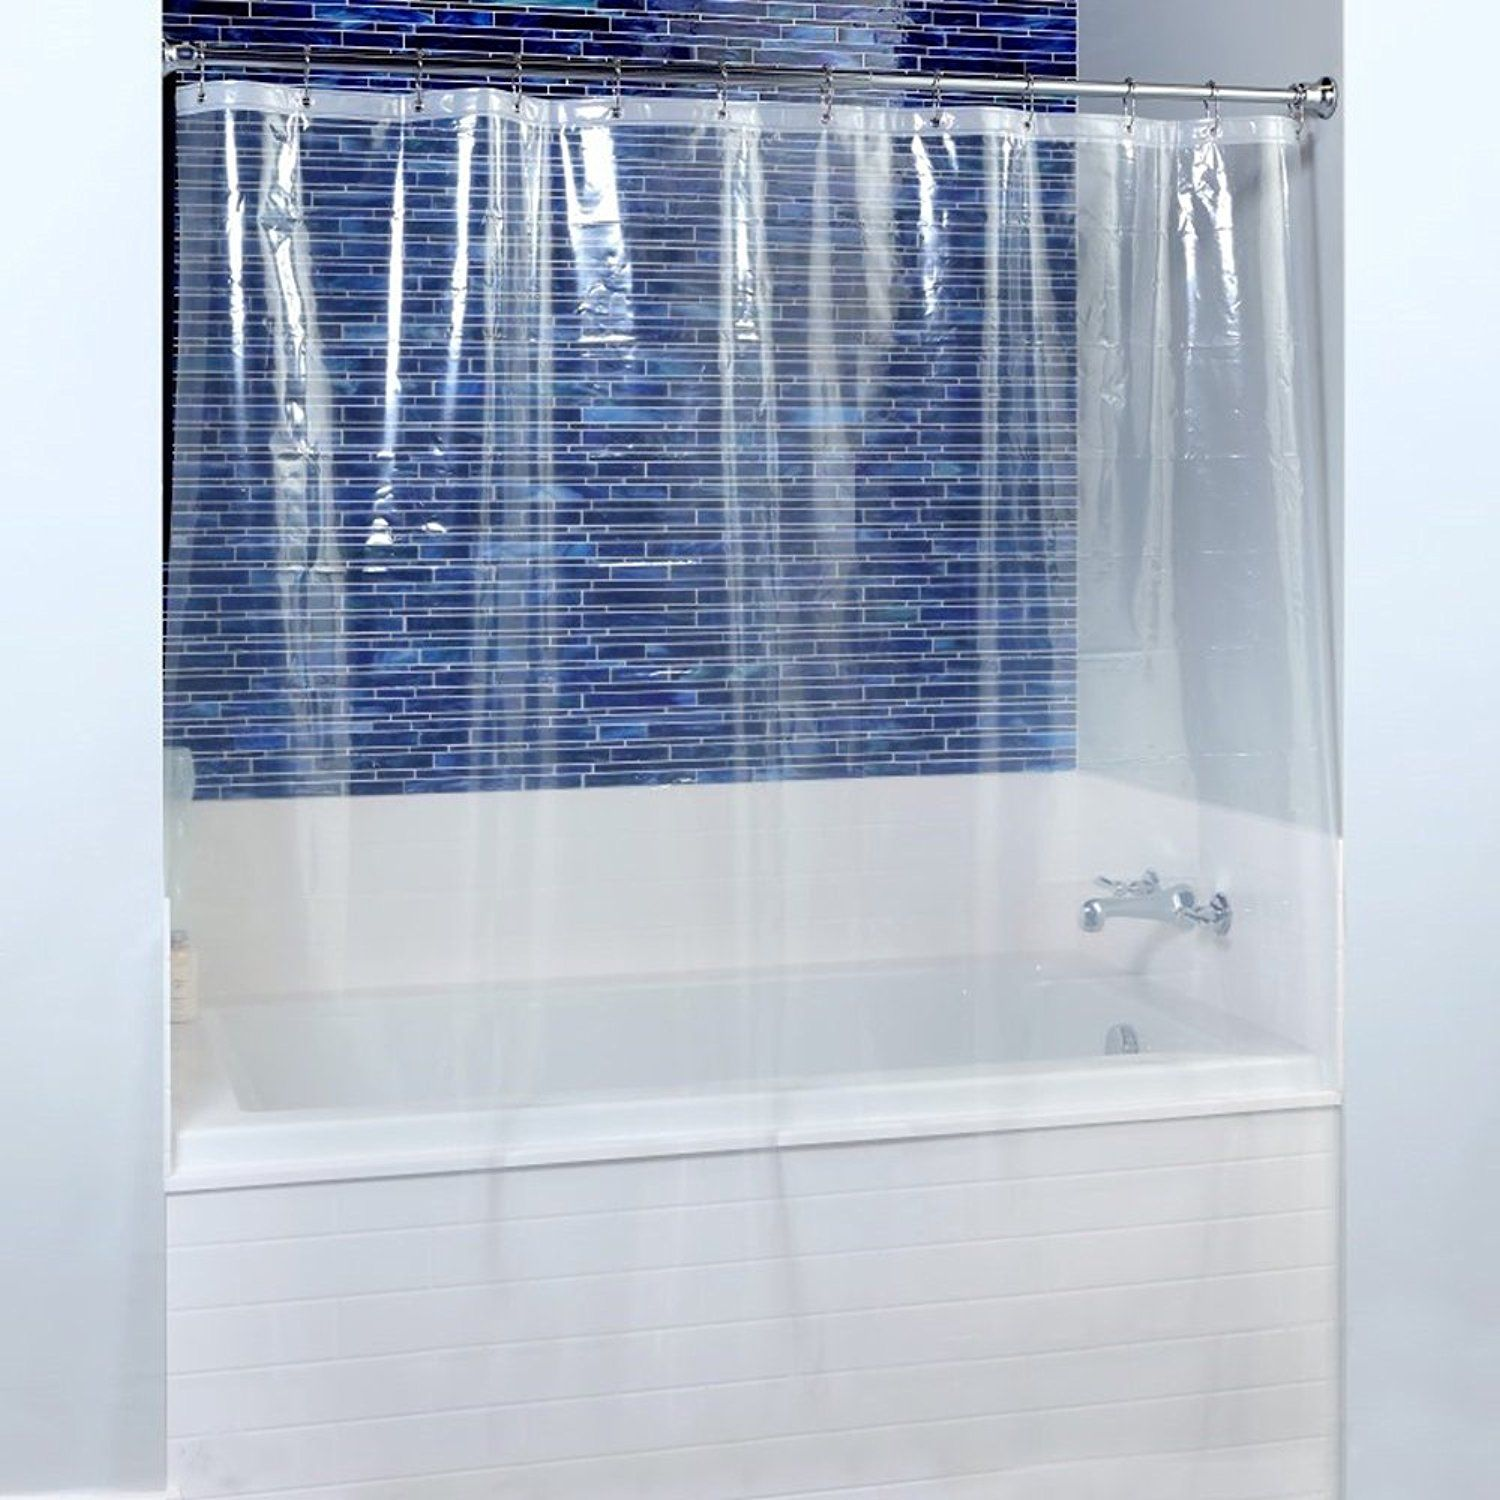 Fancy Fix Shower Curtain Liner Mildew Resistant Peva 8 Gauge Anti Bacterial Heavy Duty 72 X 72 Inches Eco Friendly Odorless Wa Shower Stall Shower Liner Shower